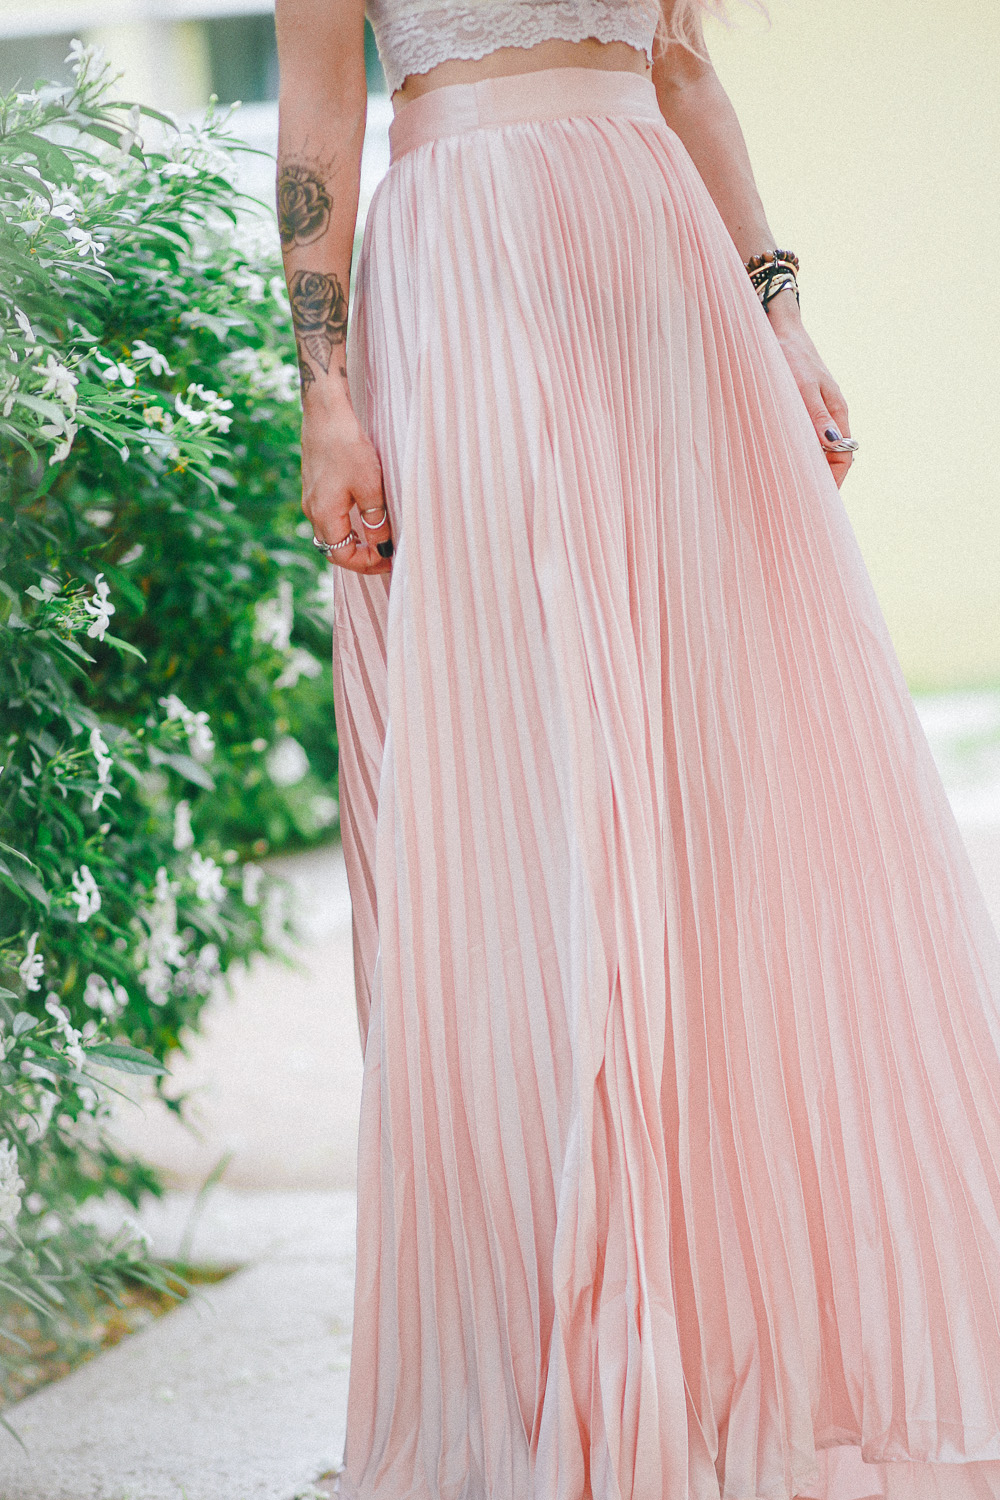 Le Happy wearing maxi pastel pleated skirt